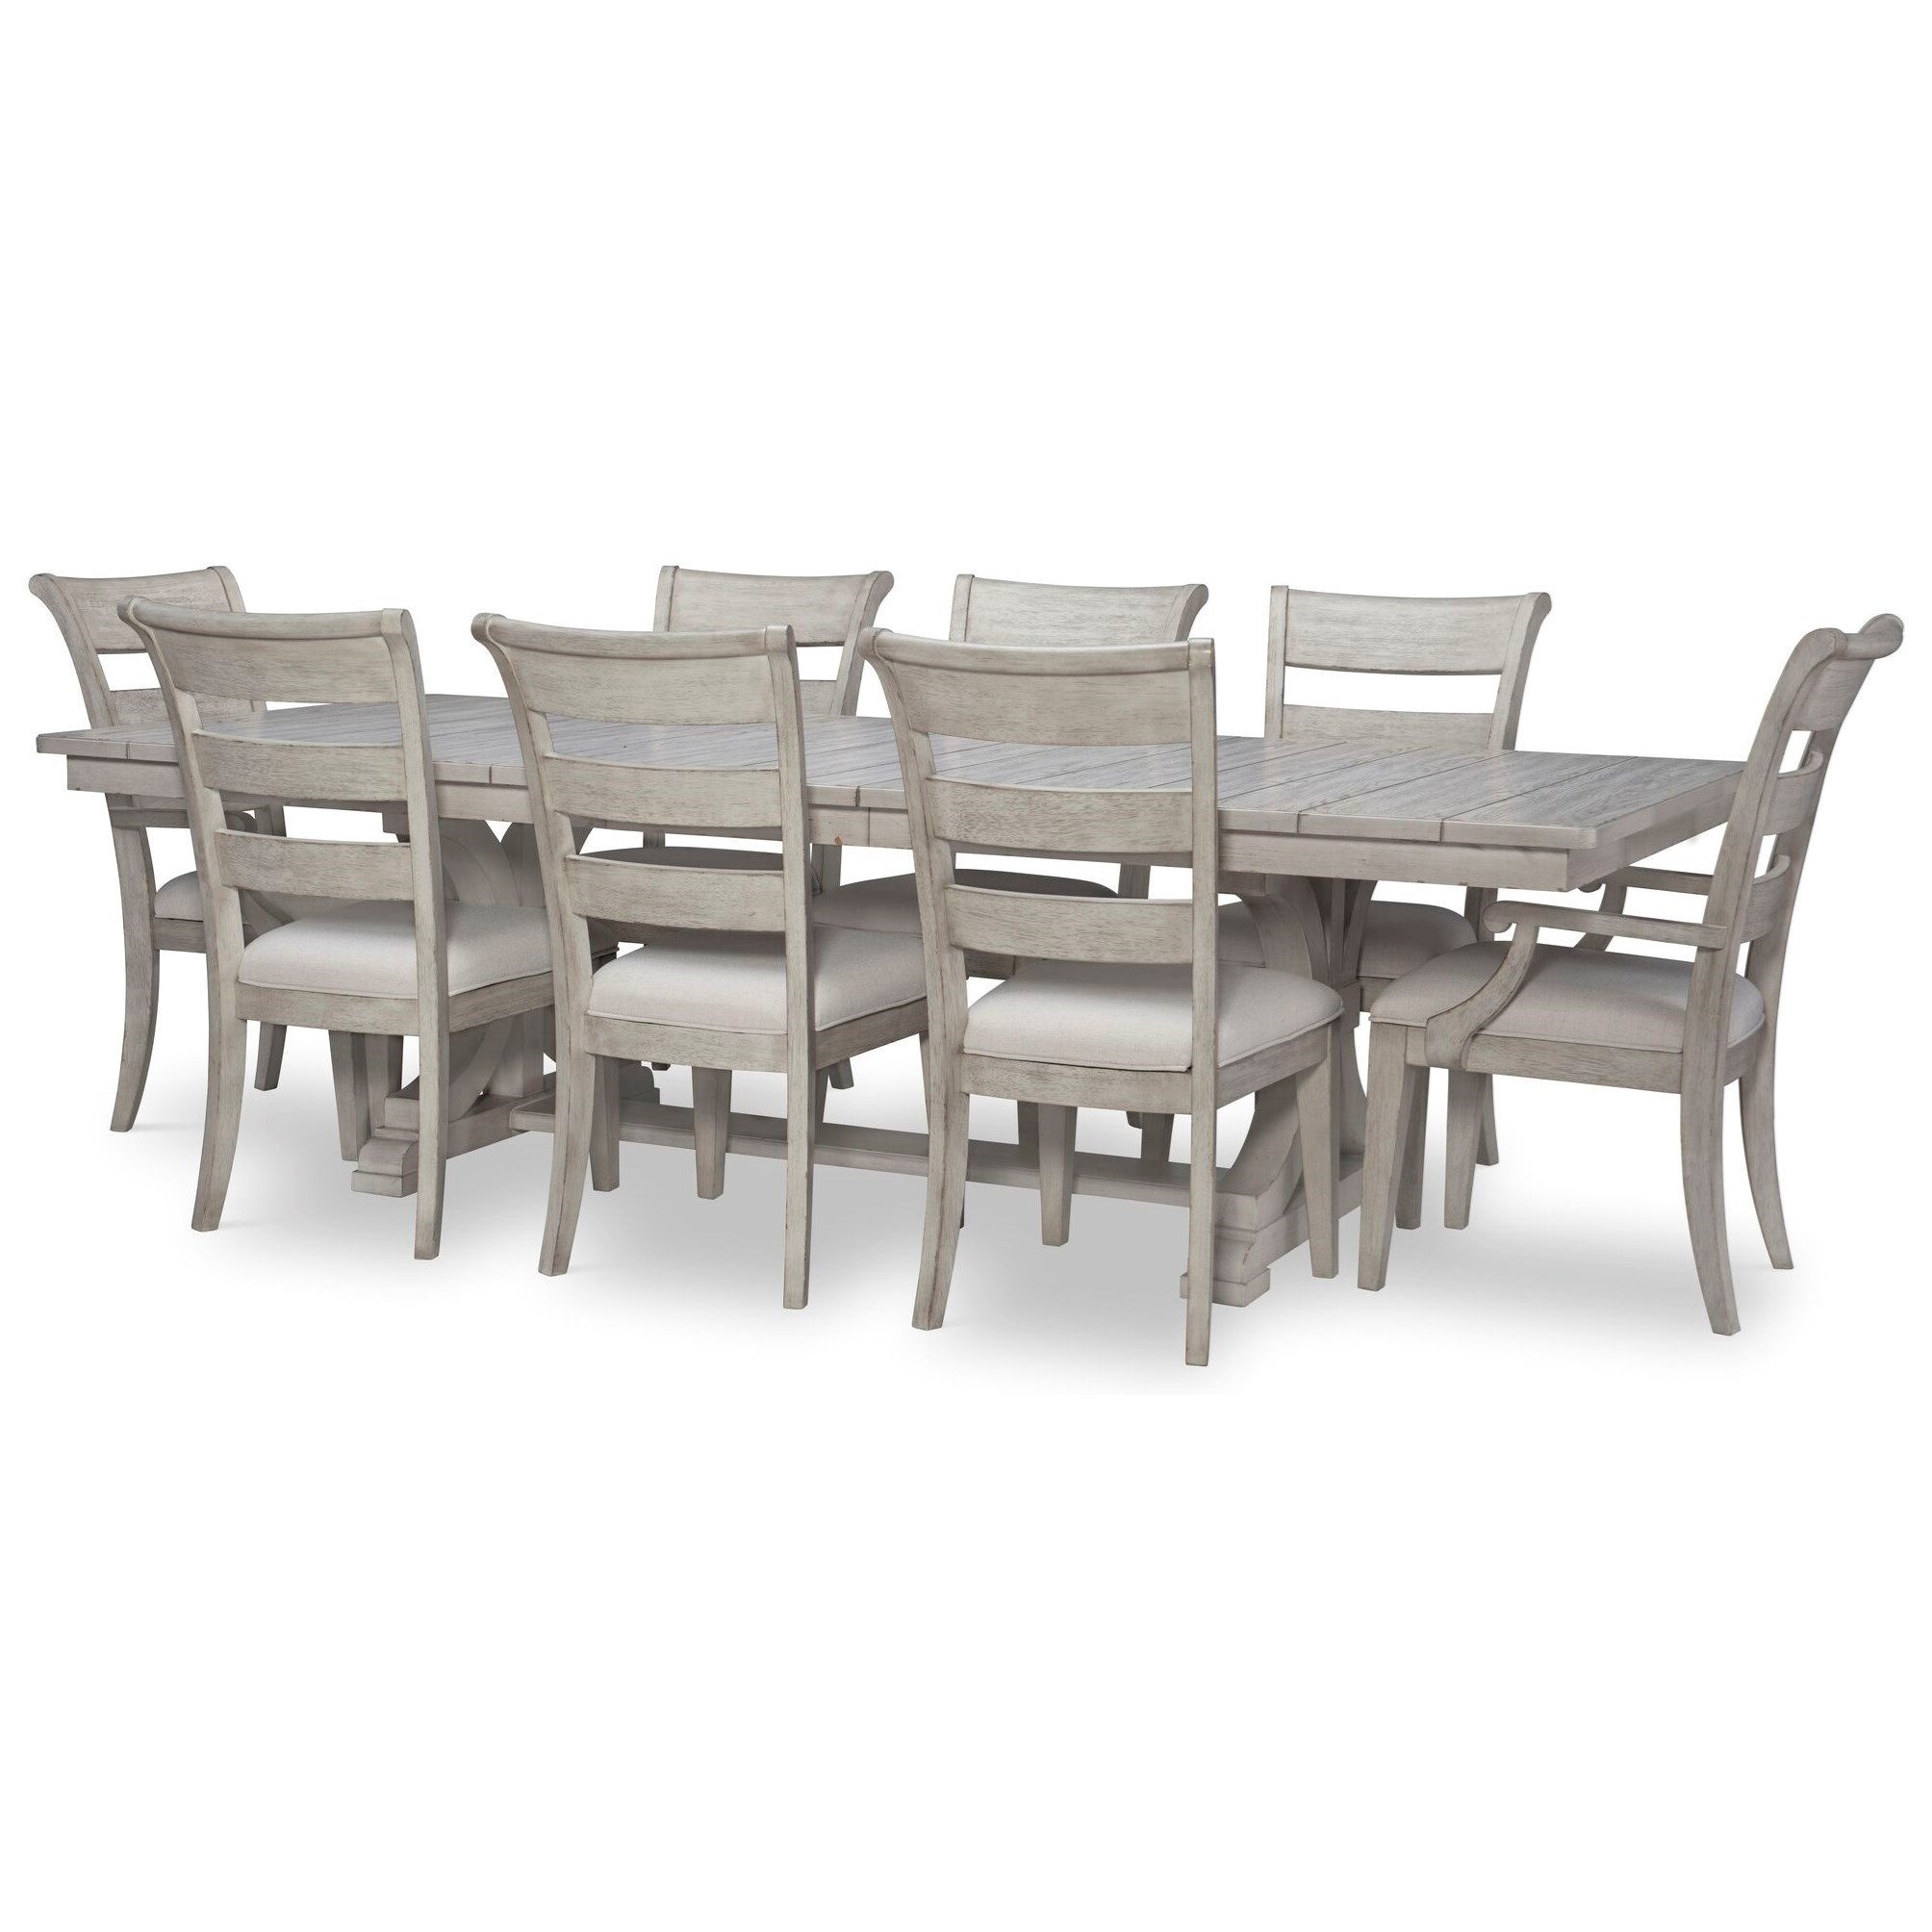 Belhaven 9-Piece Table and Chair Set by Legacy Classic at EFO Furniture Outlet